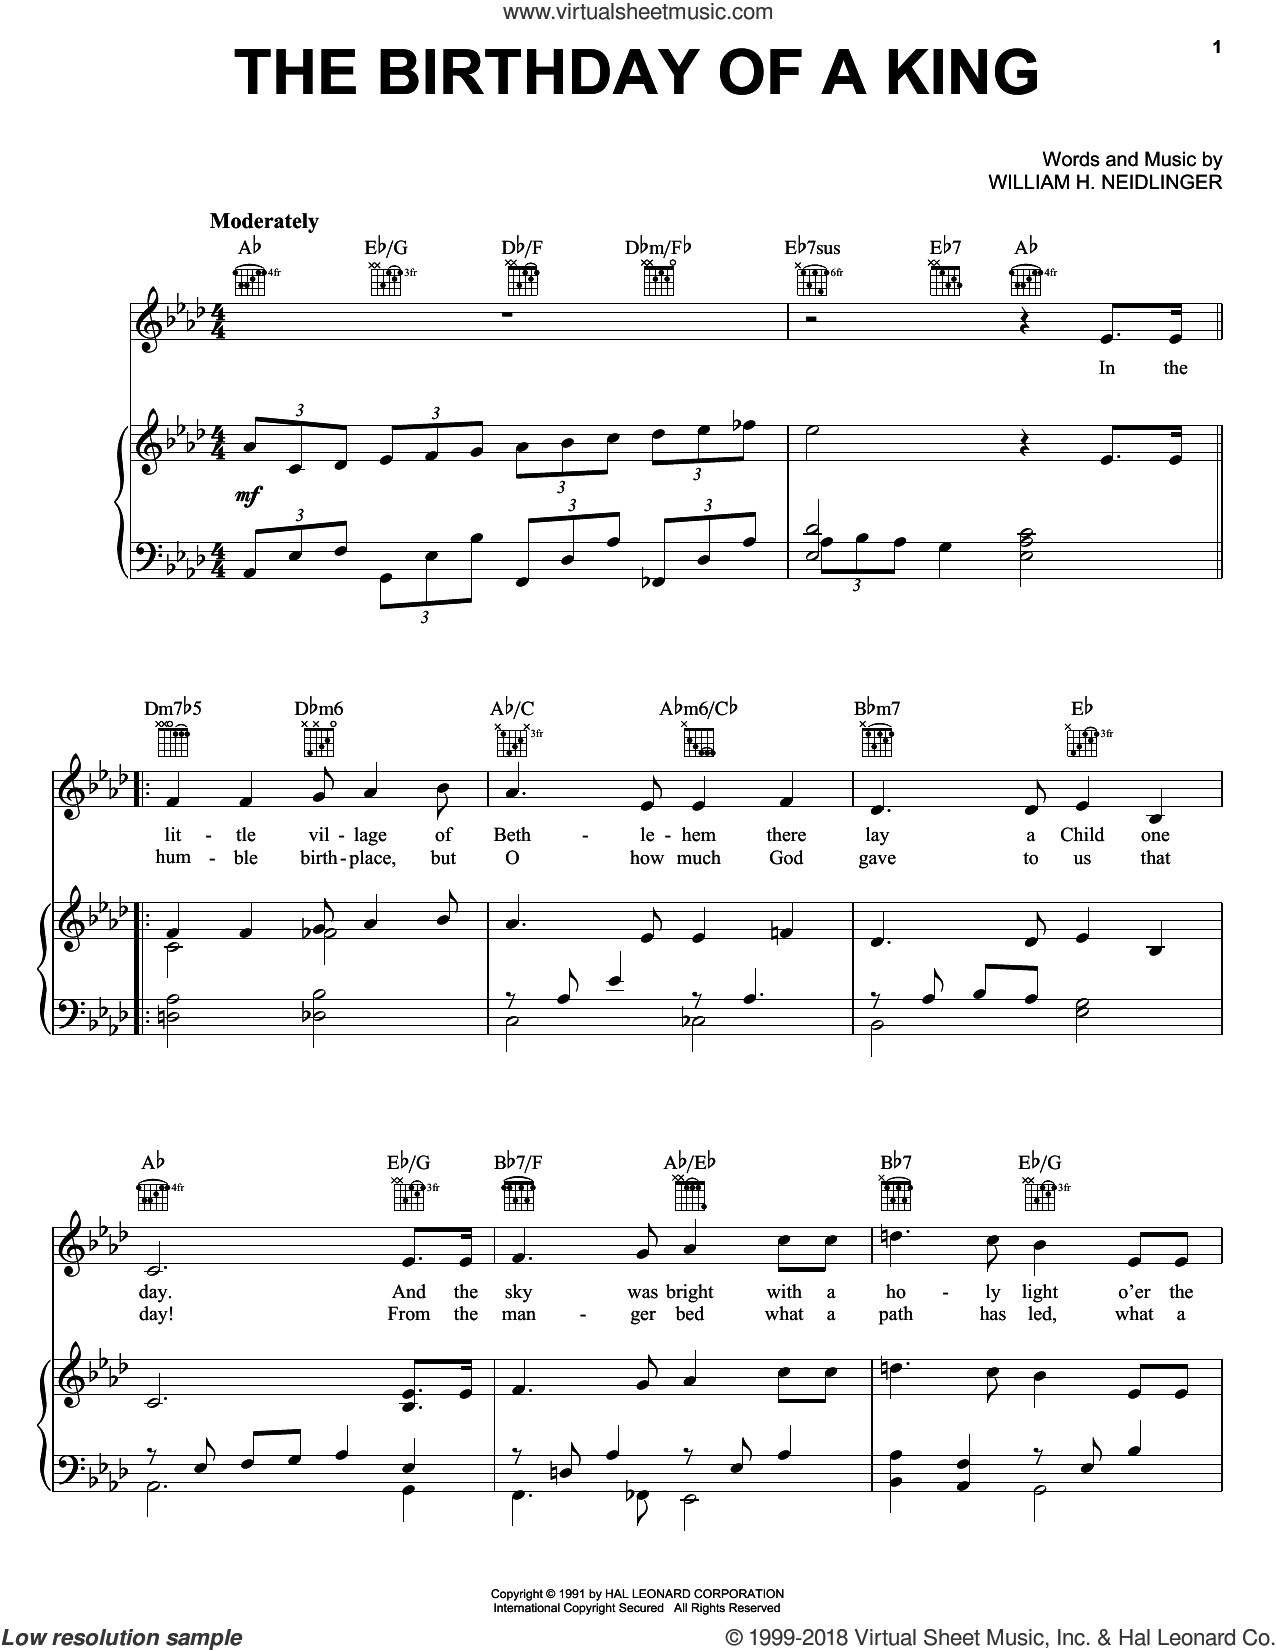 The Birthday of a King (Neidlinger) sheet music for voice, piano or guitar by William Harold Neidlinger, intermediate skill level